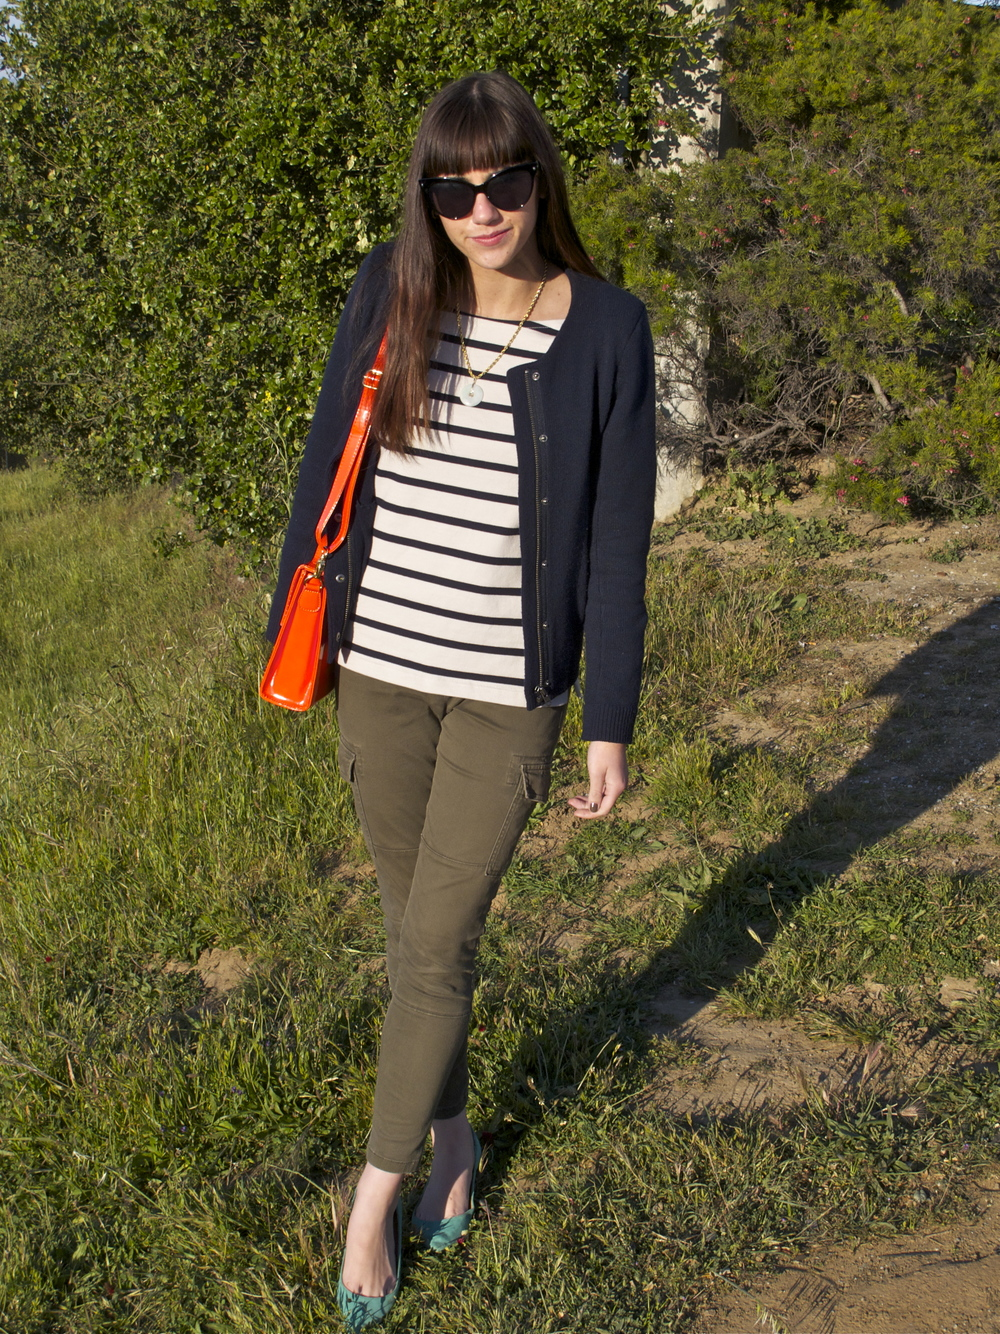 Jacket: Jigsaw London; Stripe Top: Jigsaw London; Cargo Legging: GAP; Flats: Steve Madden; Bag: Forever21